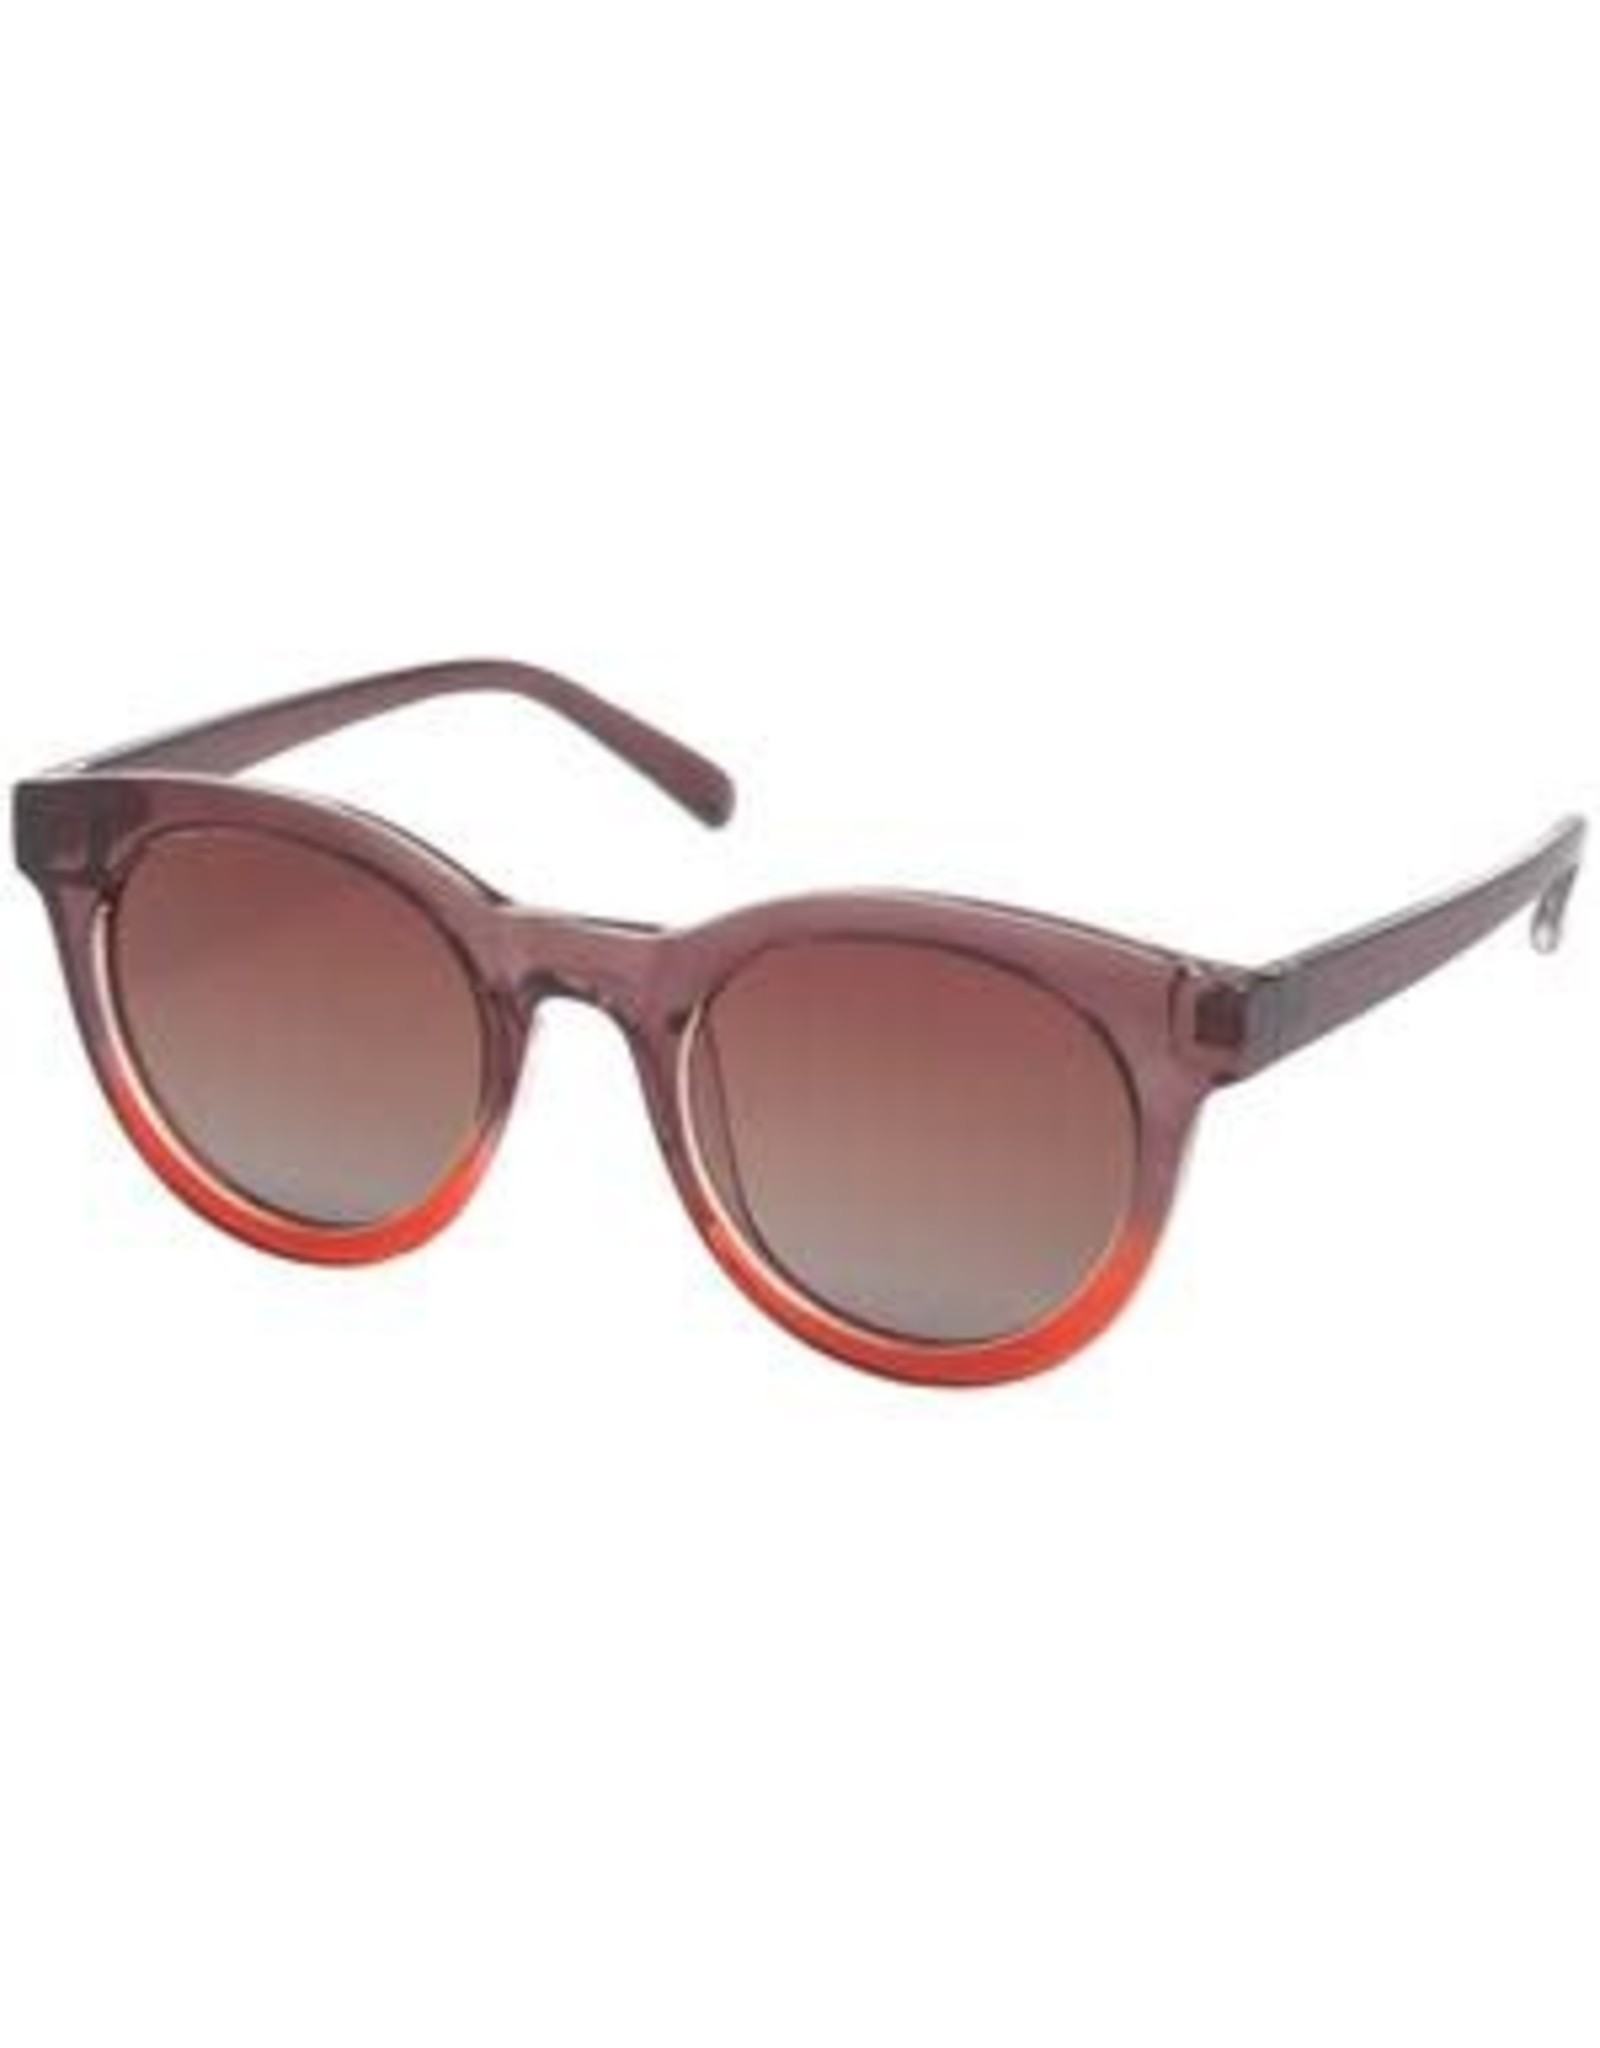 Pilgrim Pilgrim Sunglasses Tamara black & red